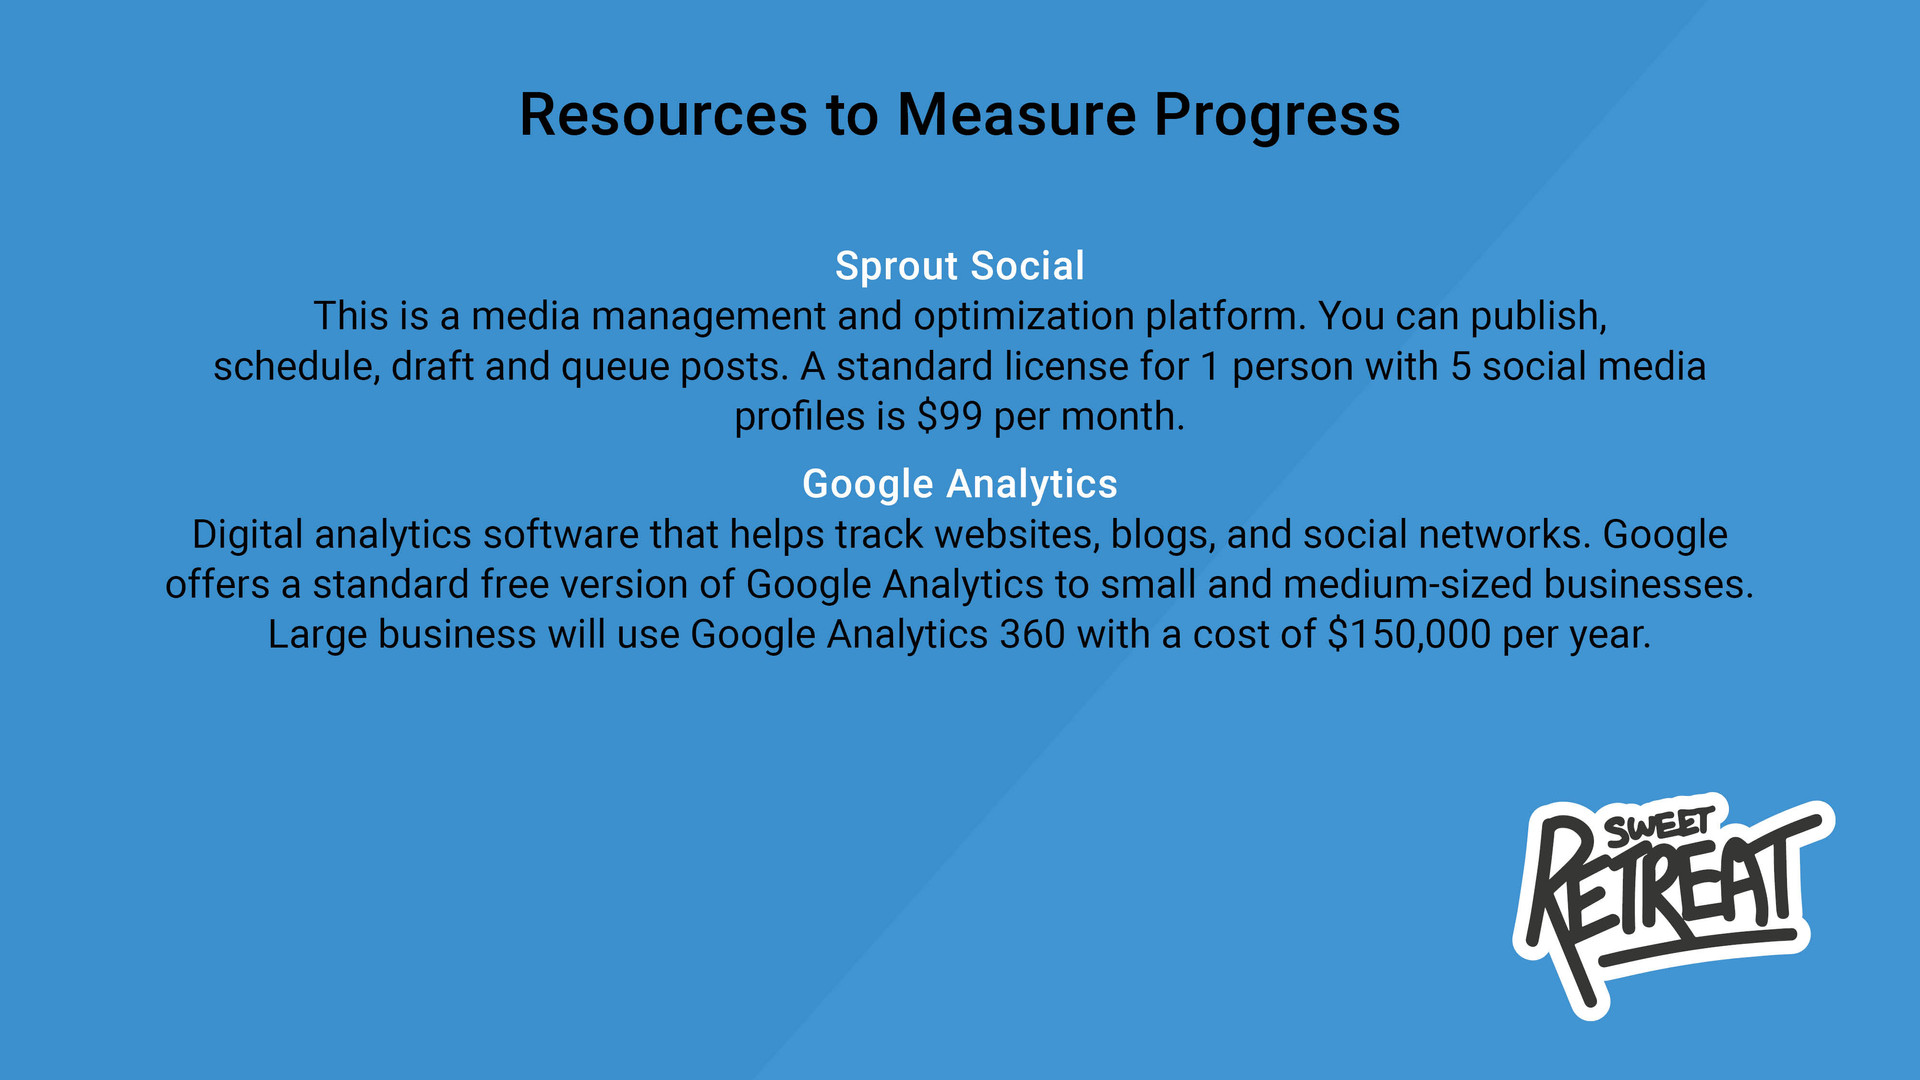 Resources to Measure Progress